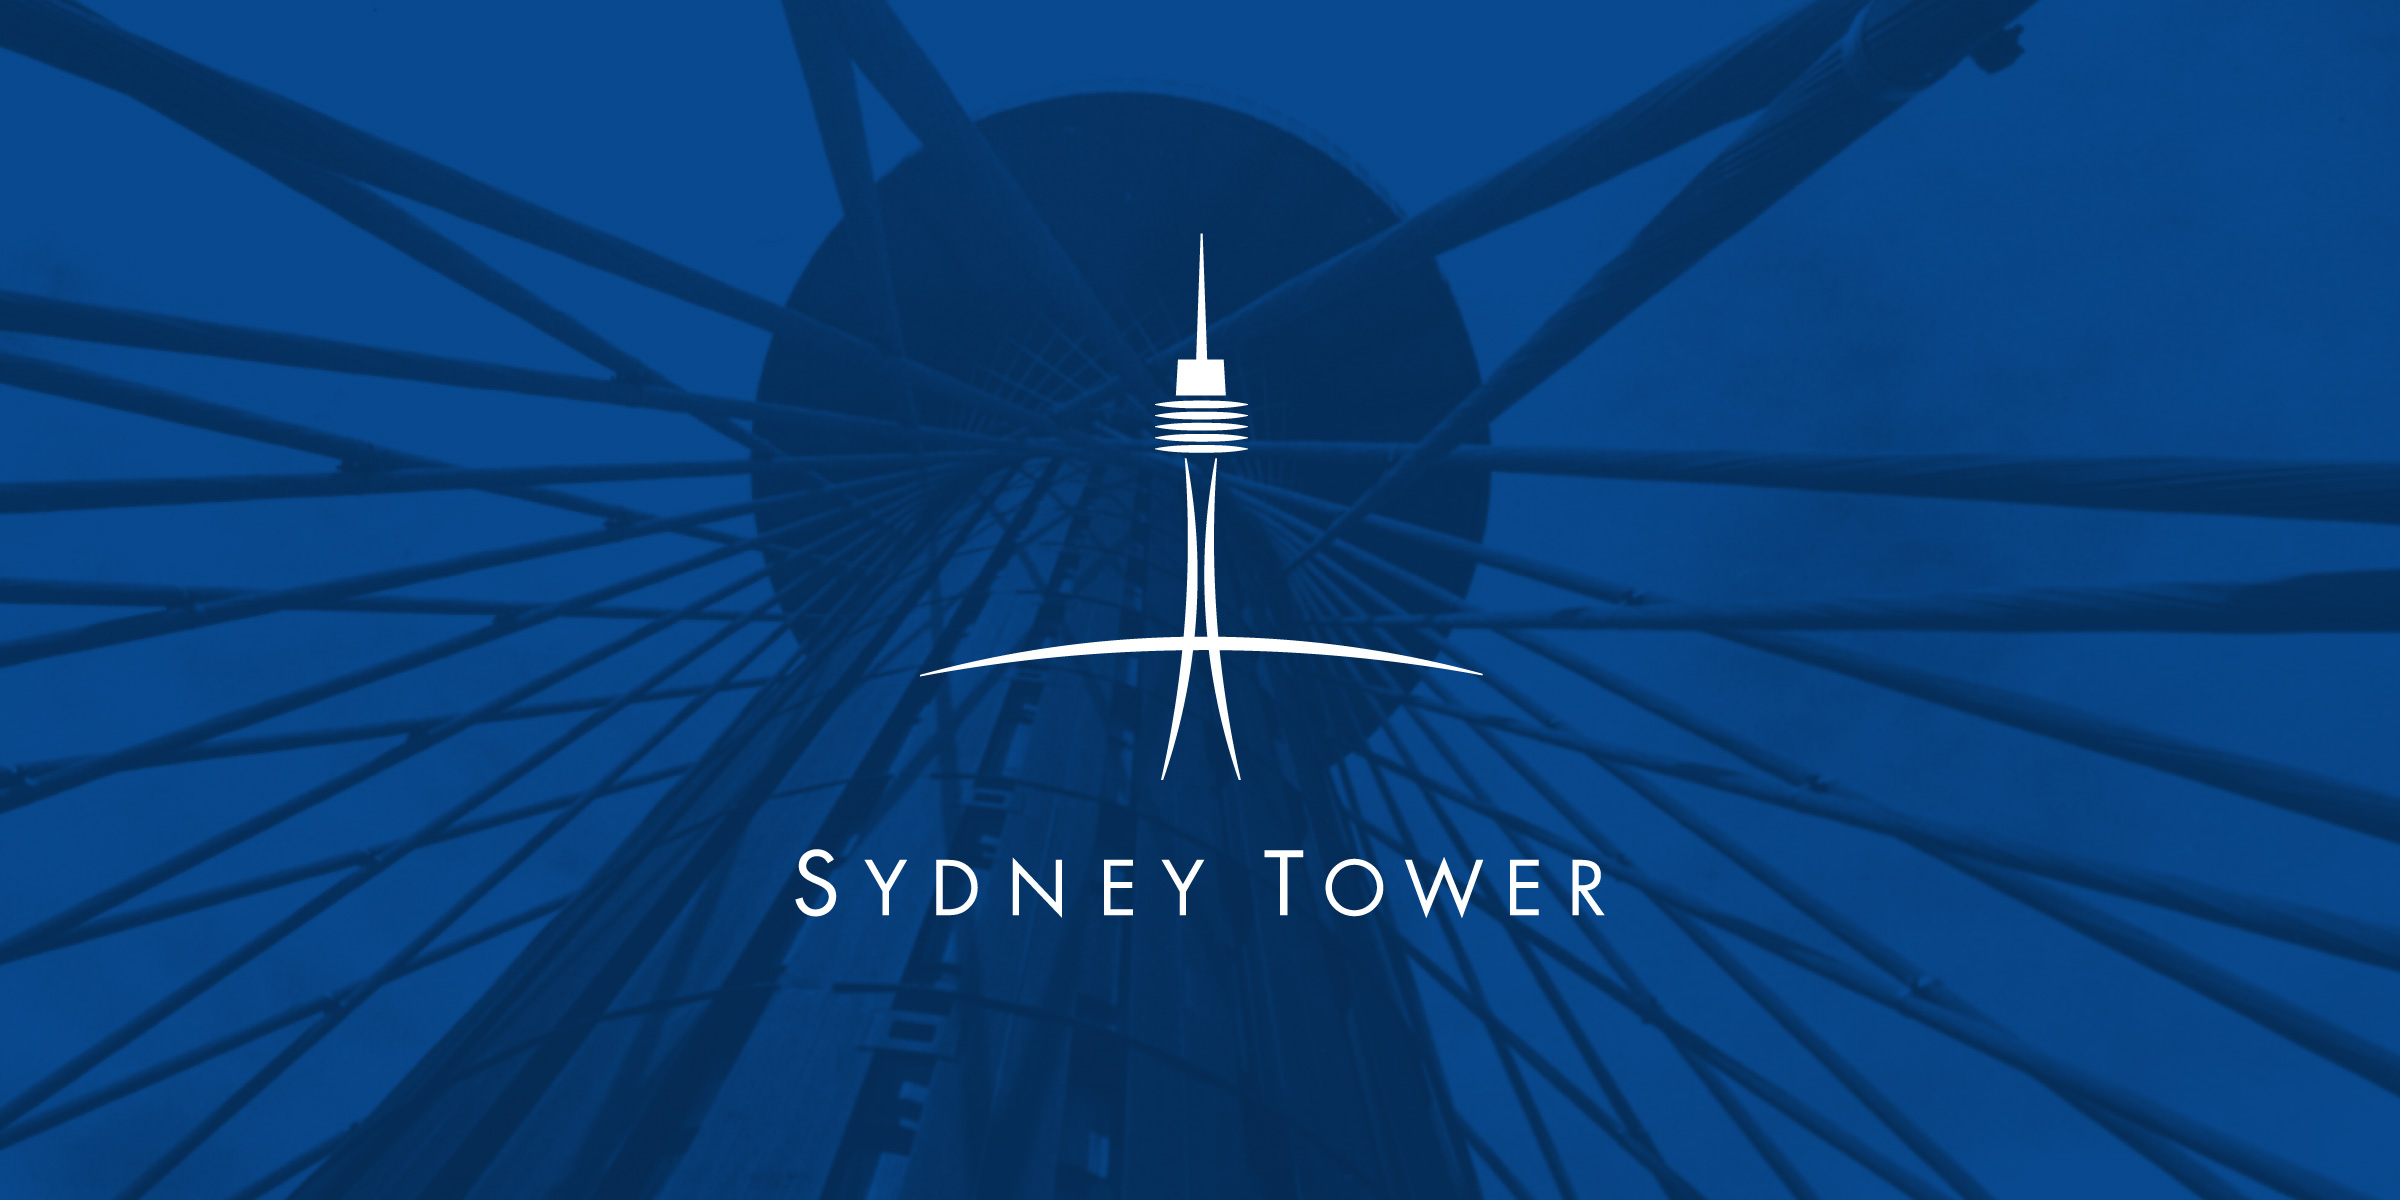 Sydney Tower Branding and Identity, Signage Design